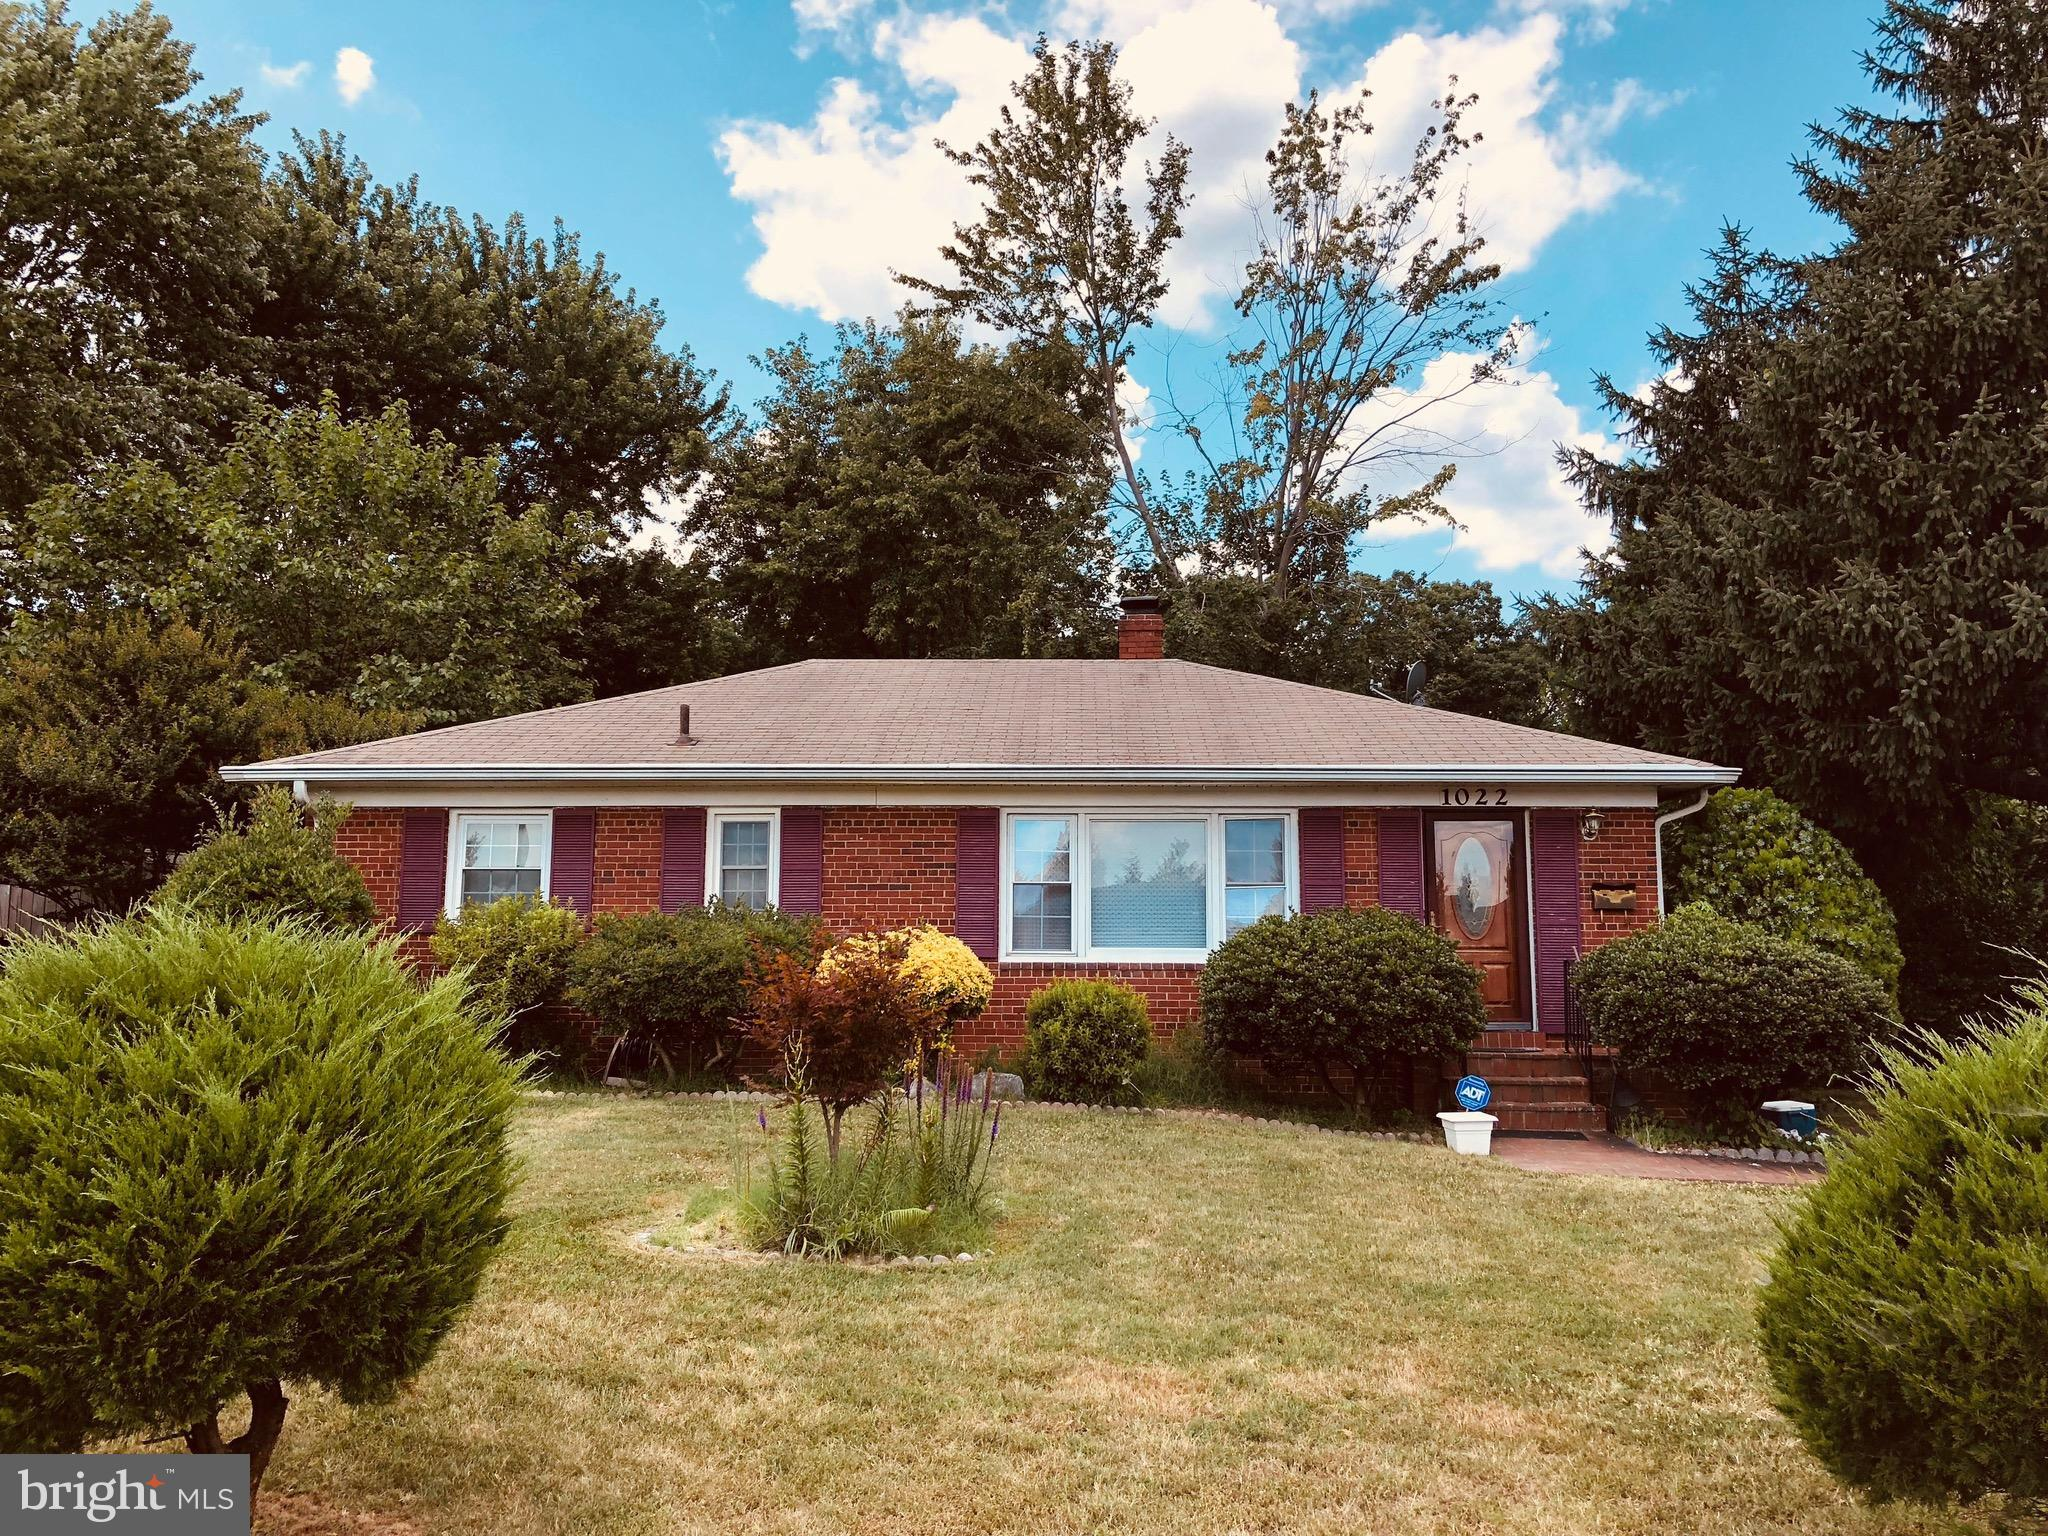 Rare opportunity in historic Seminary community ~ Updated kitchen, granite counter tops, stainless steel appliances ~ Original hardwood floors, attached sunroom addition w/ deck and patio access ~ well groomed yard, finished basement ~ minutes from beltway & metro, walk to shopping centers. Agent-Owner relationship.